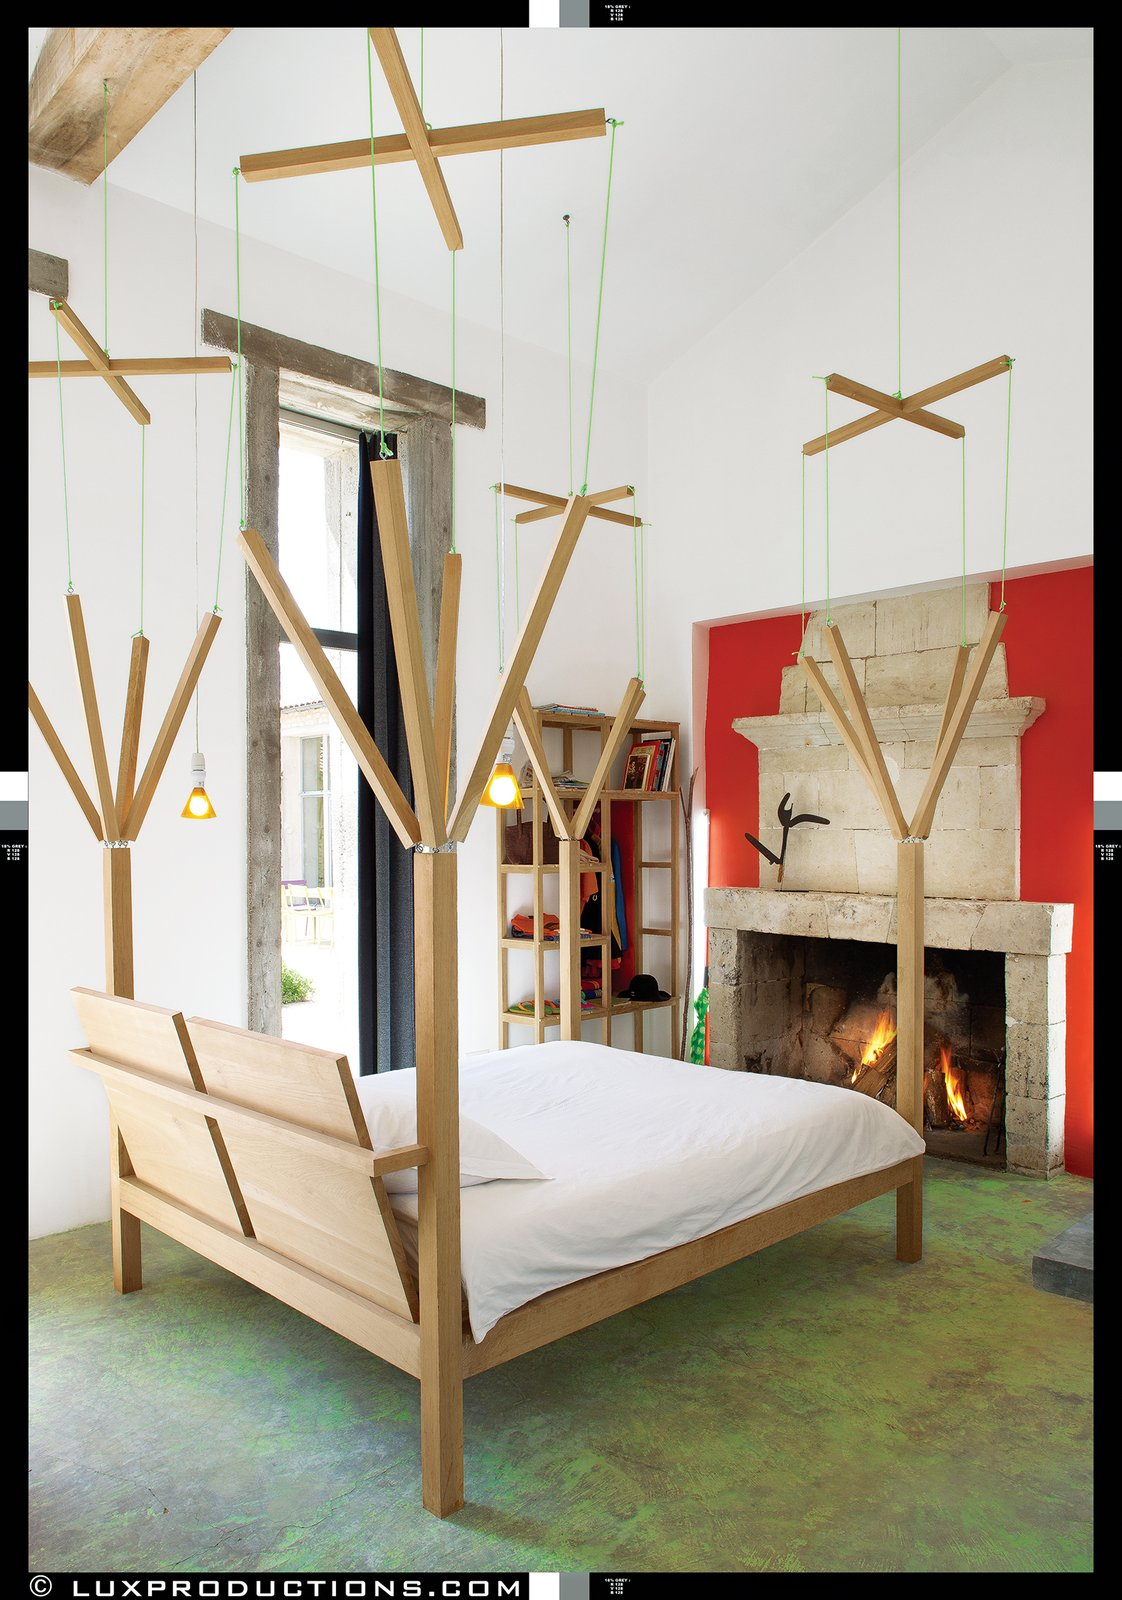 All of the beds in the house are playful custom one-off designs by Crasset, including the marionette-themed master bed, which a local carpenter fabricated from oak felled in the surrounding forest. The stone fireplace is original.  Bedroom from Matali Crasset Renovates Monory Farmhouse